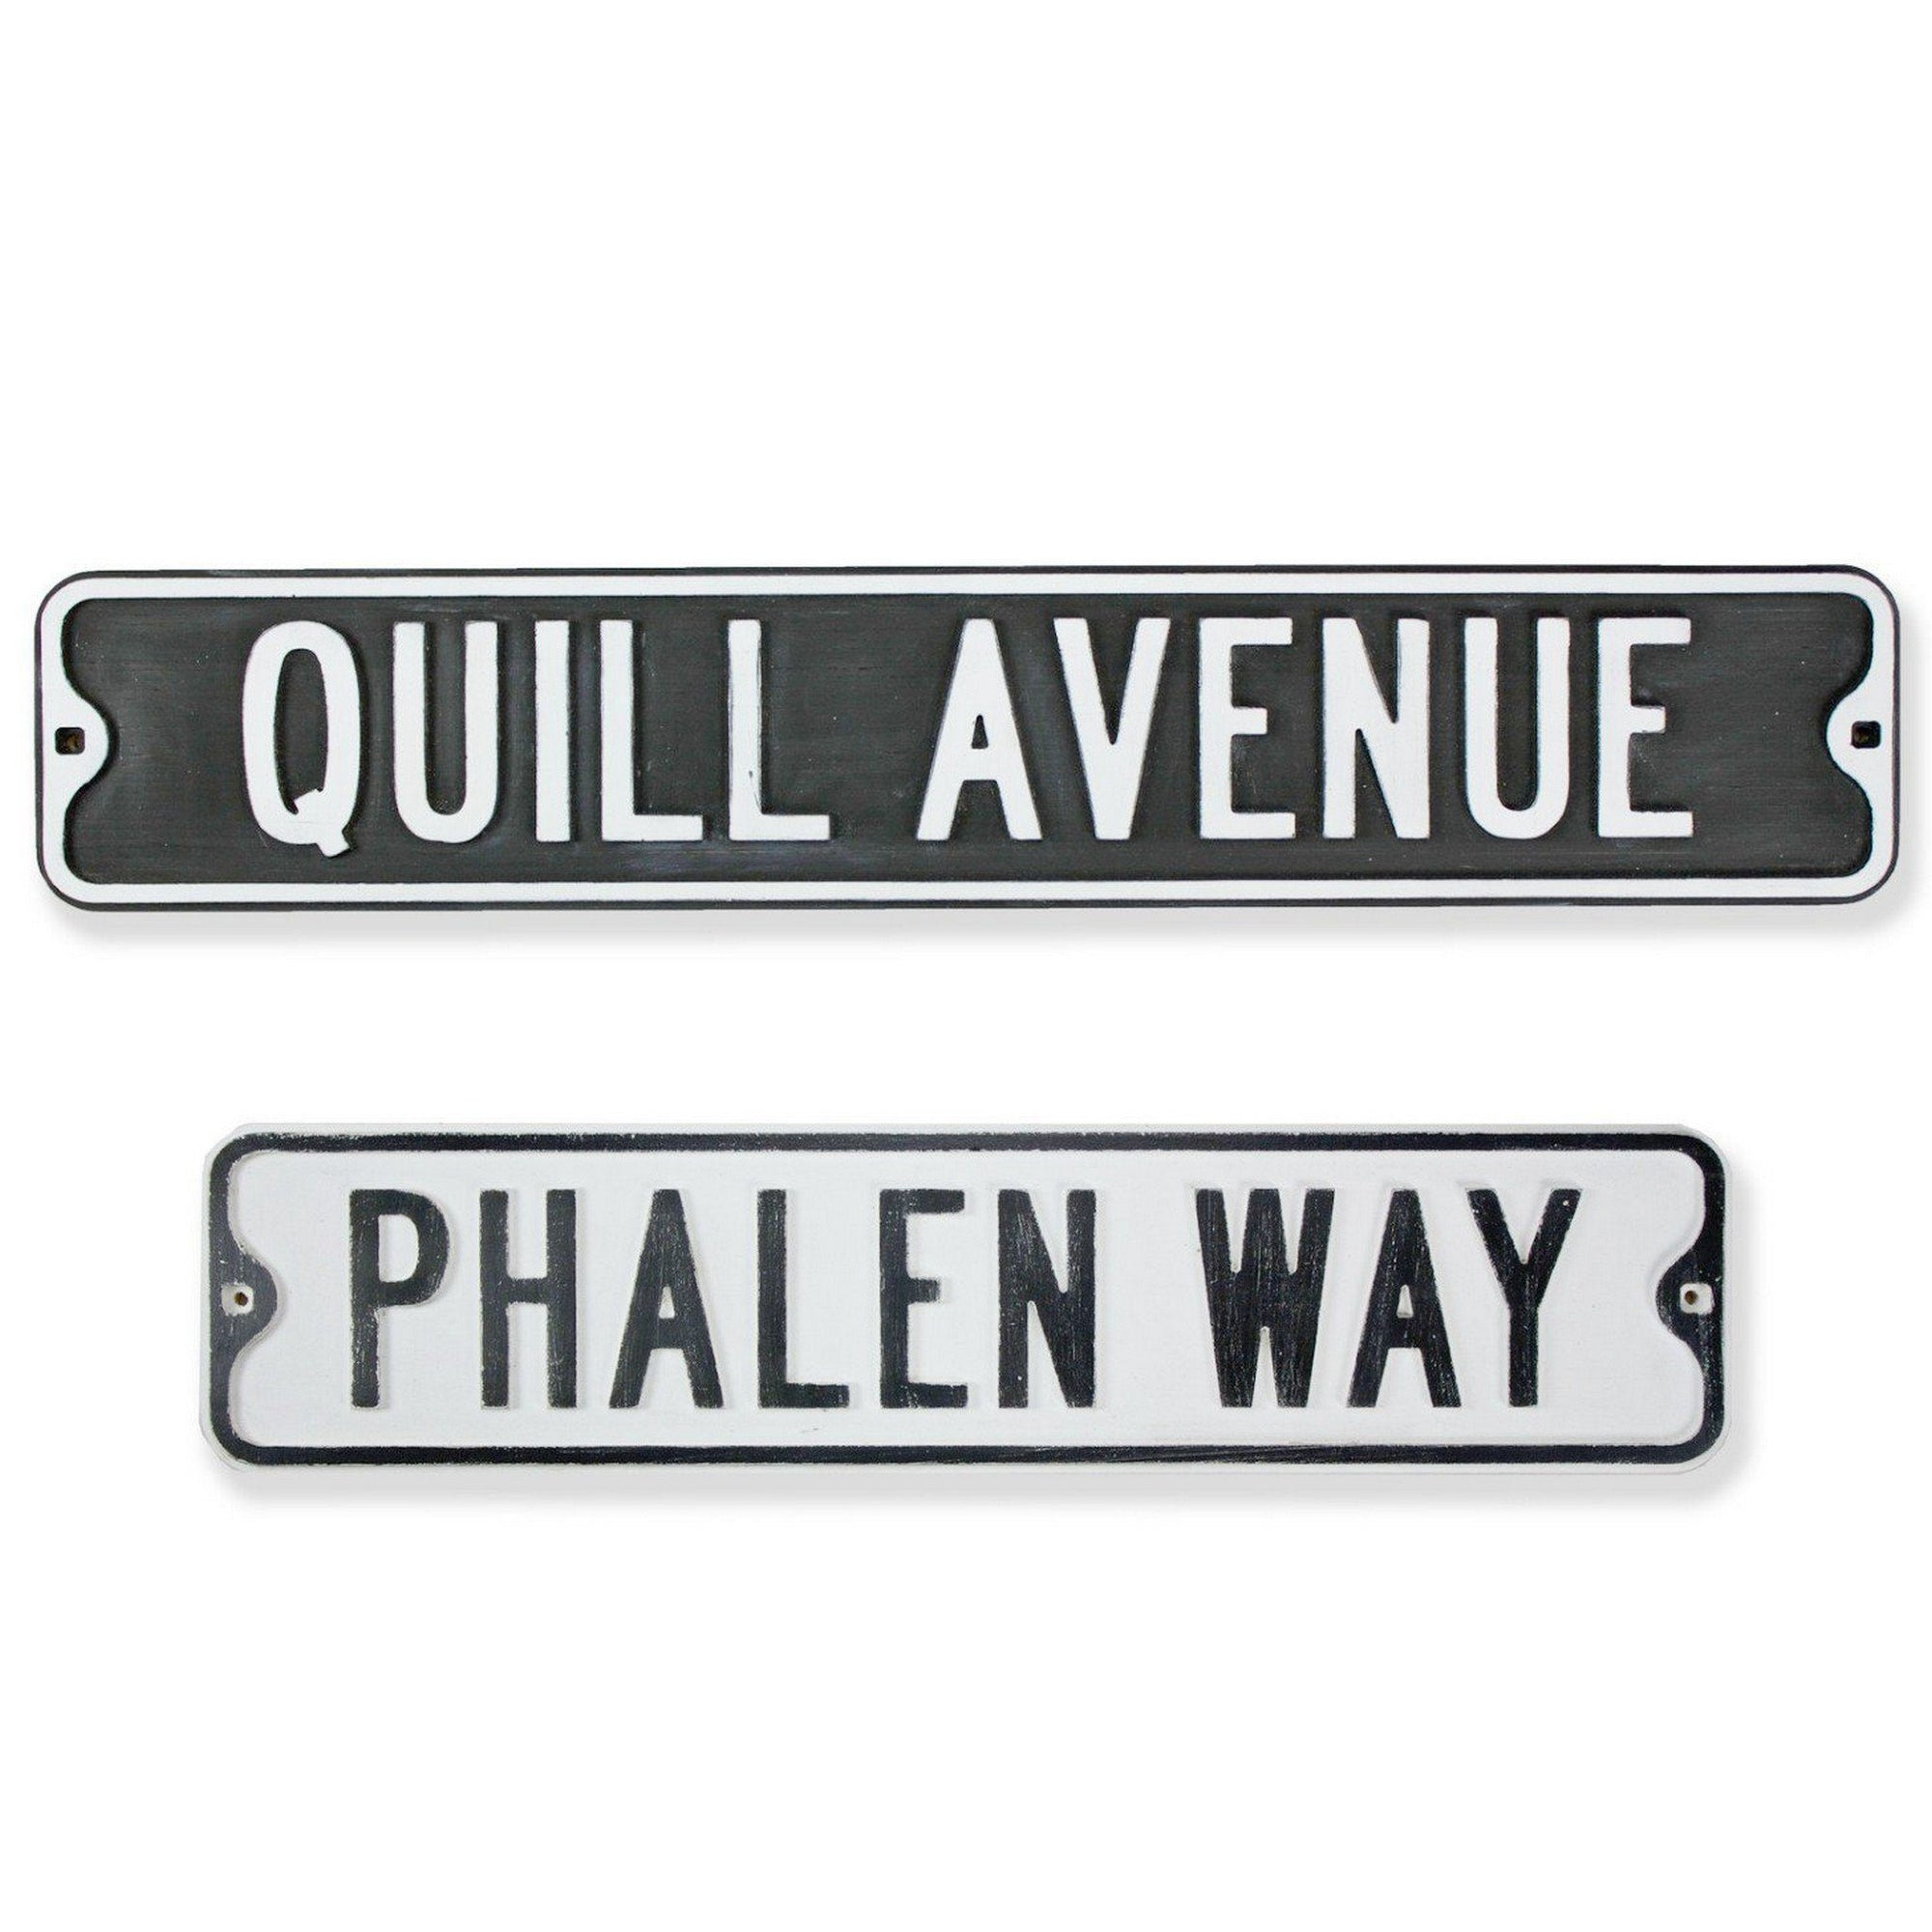 Personalized Street Signs >> Personalized Vintage Street Sign